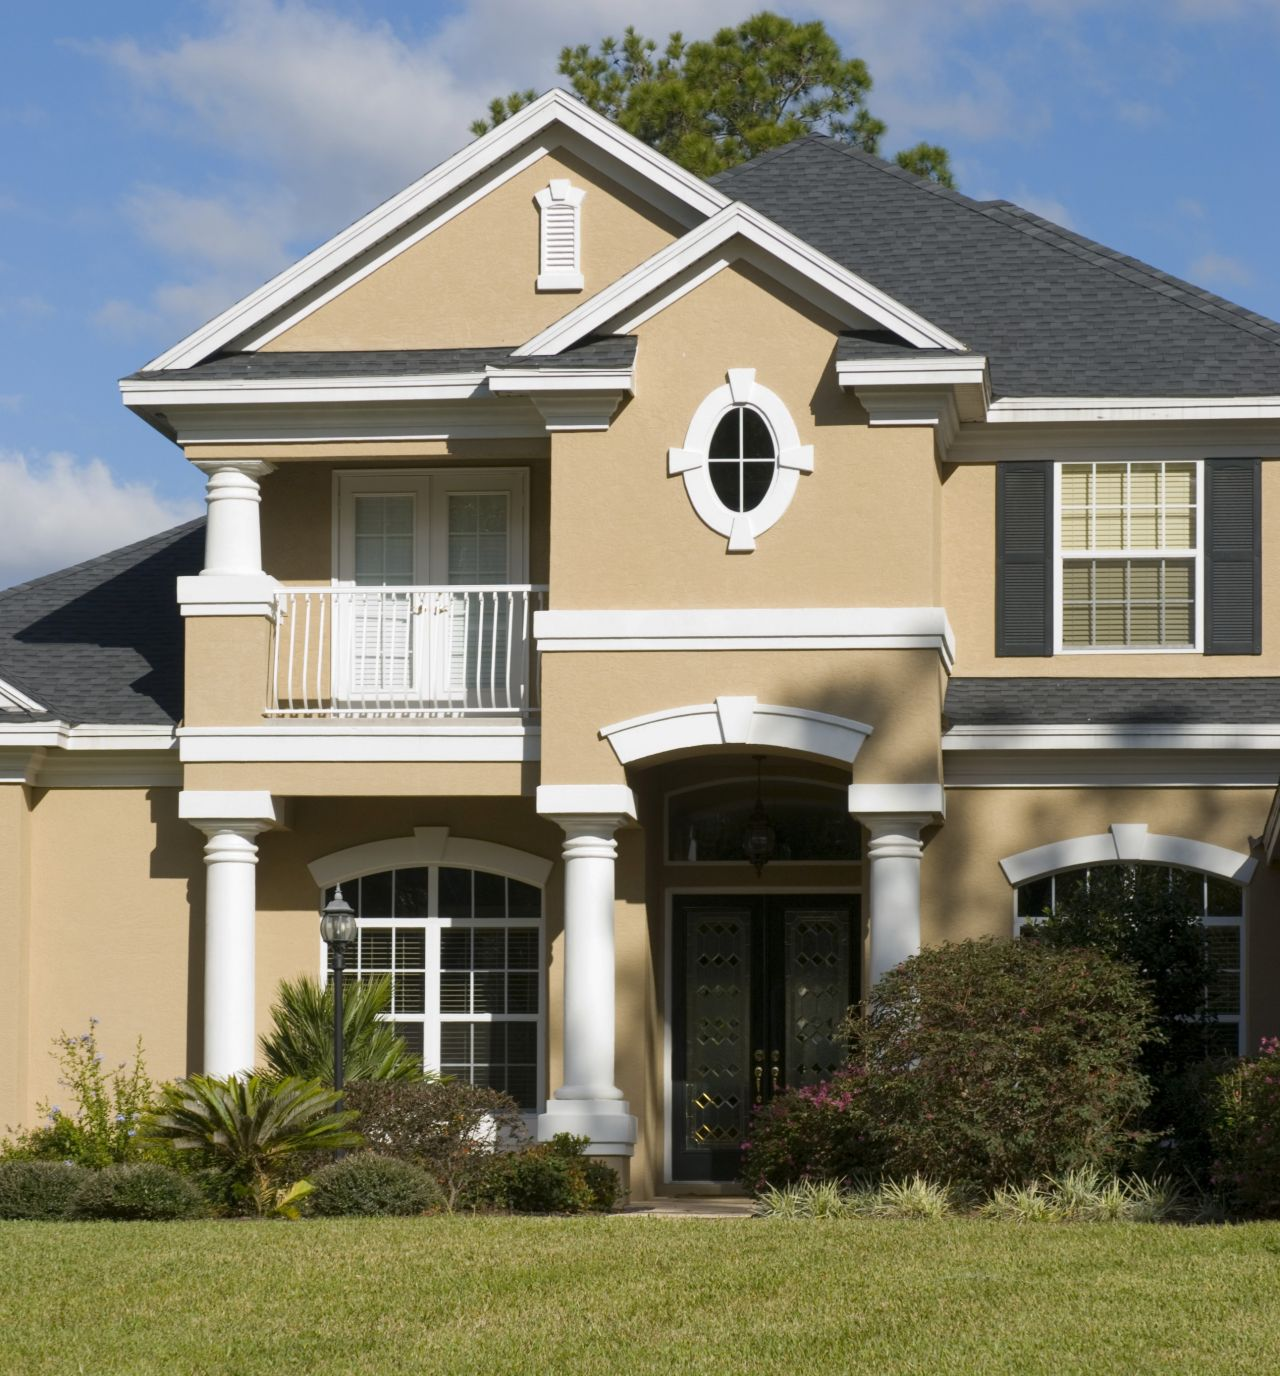 For Painting Exterior Paint Color : Exterior paint schemes and consider your surroundings